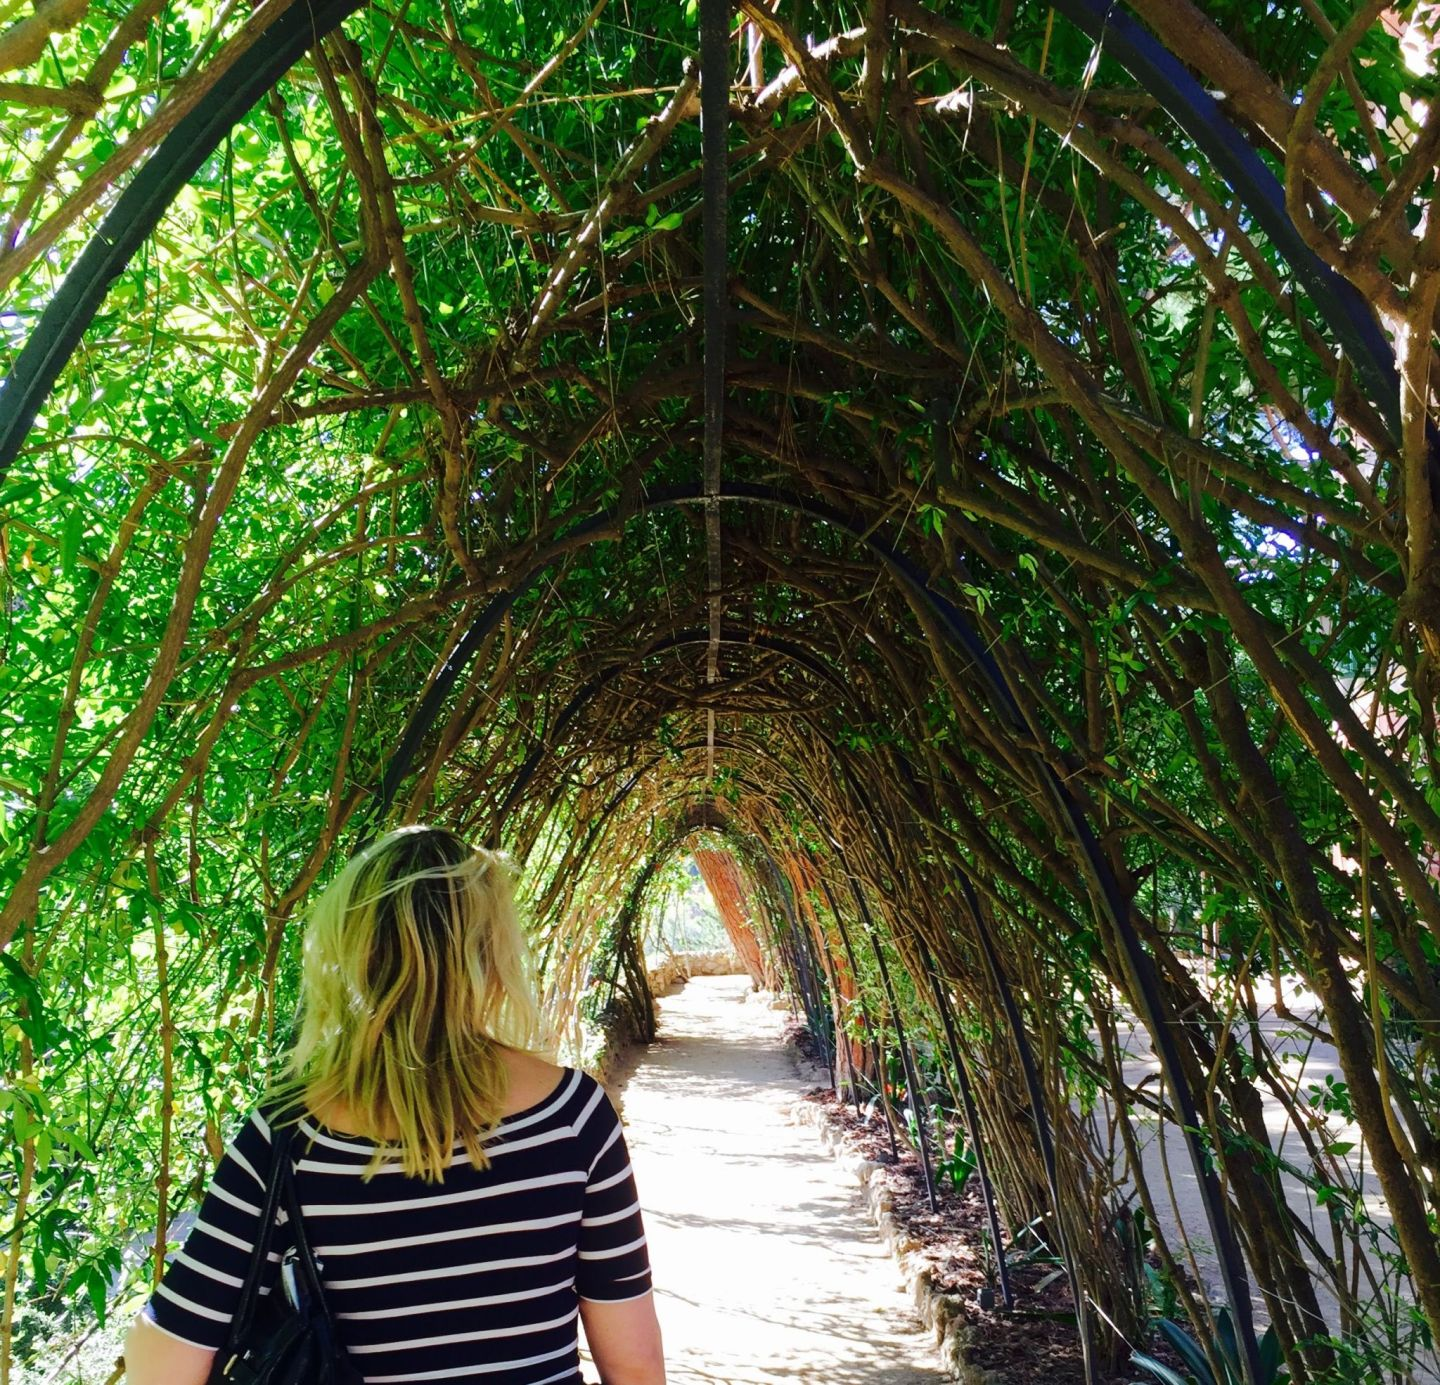 Laura in the gardens of the Gaudi House, Parc Guell